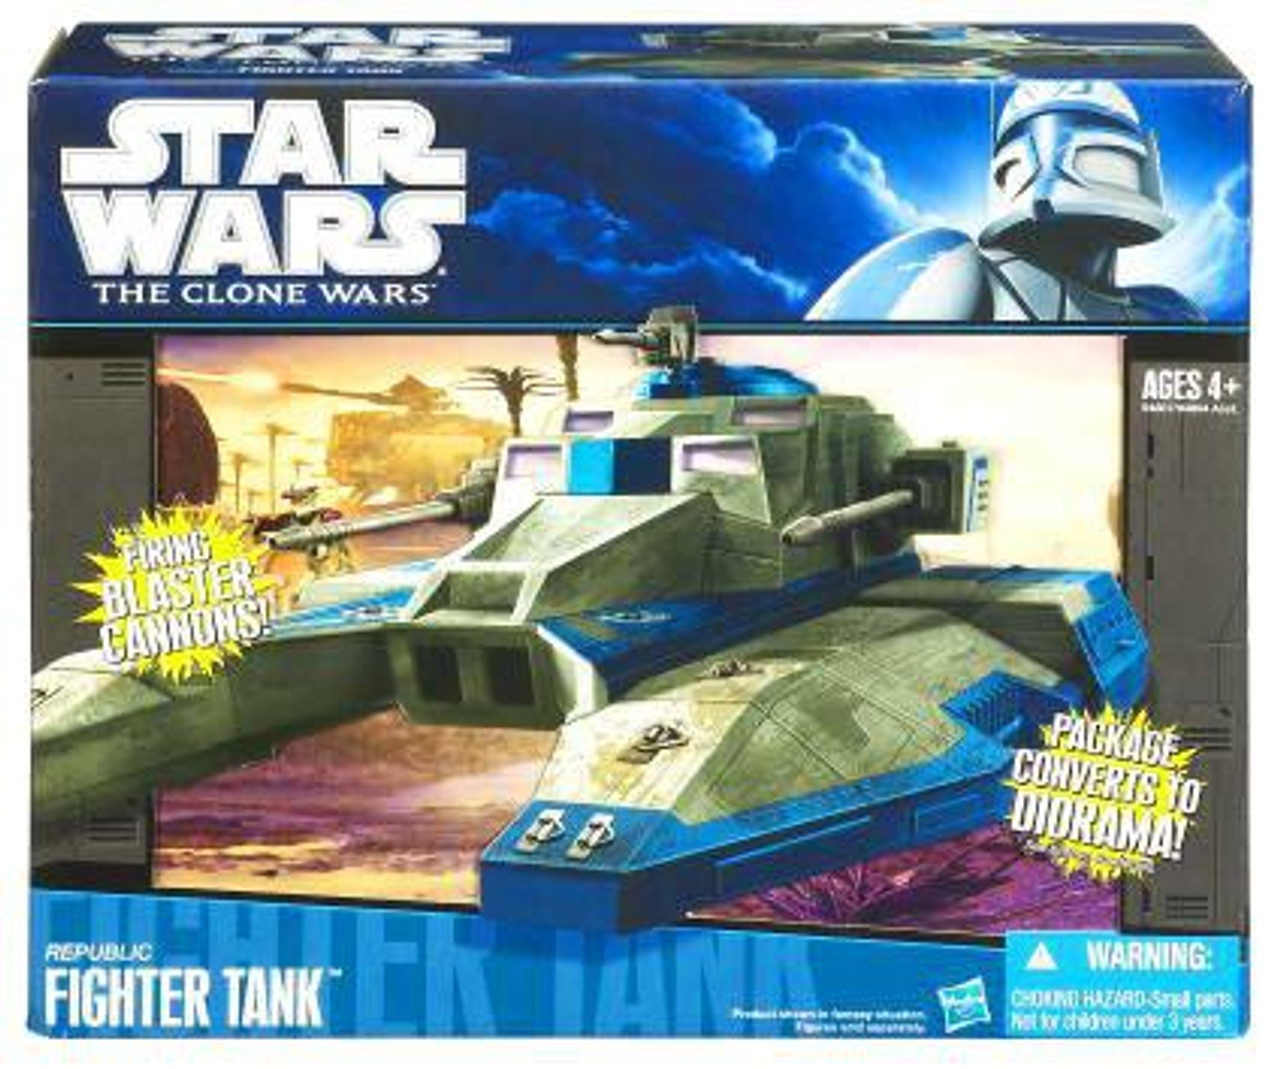 Star Wars The Clone Wars Vehicles 2010 Republic Fighter Tank Action Figure Vehicle